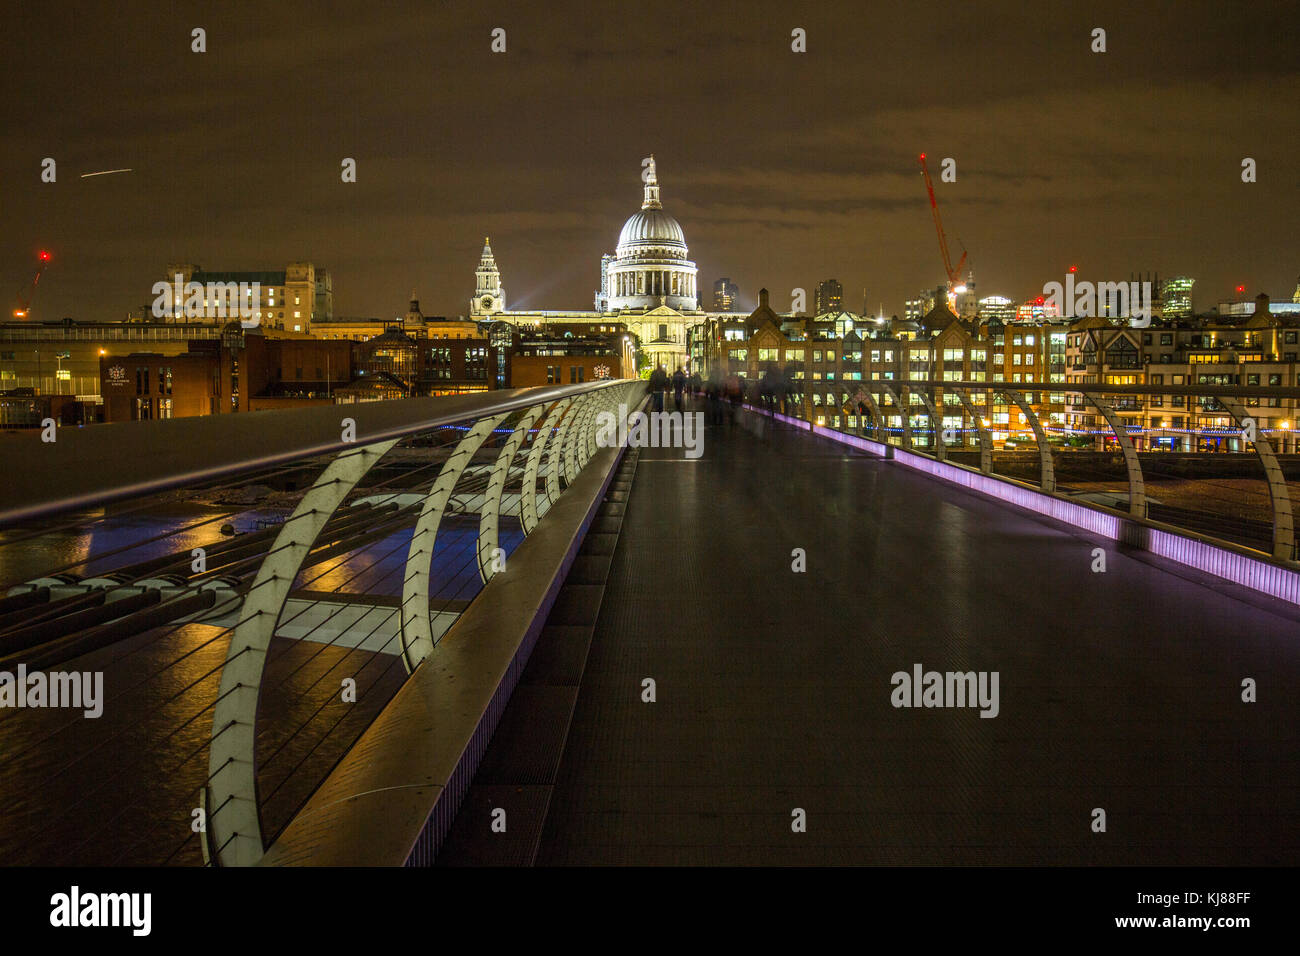 Sir Norman Foster's Wobbly Millennium Pedestrian Bridge from Southbank to Sir Christopher Wren's iconic - Stock Image